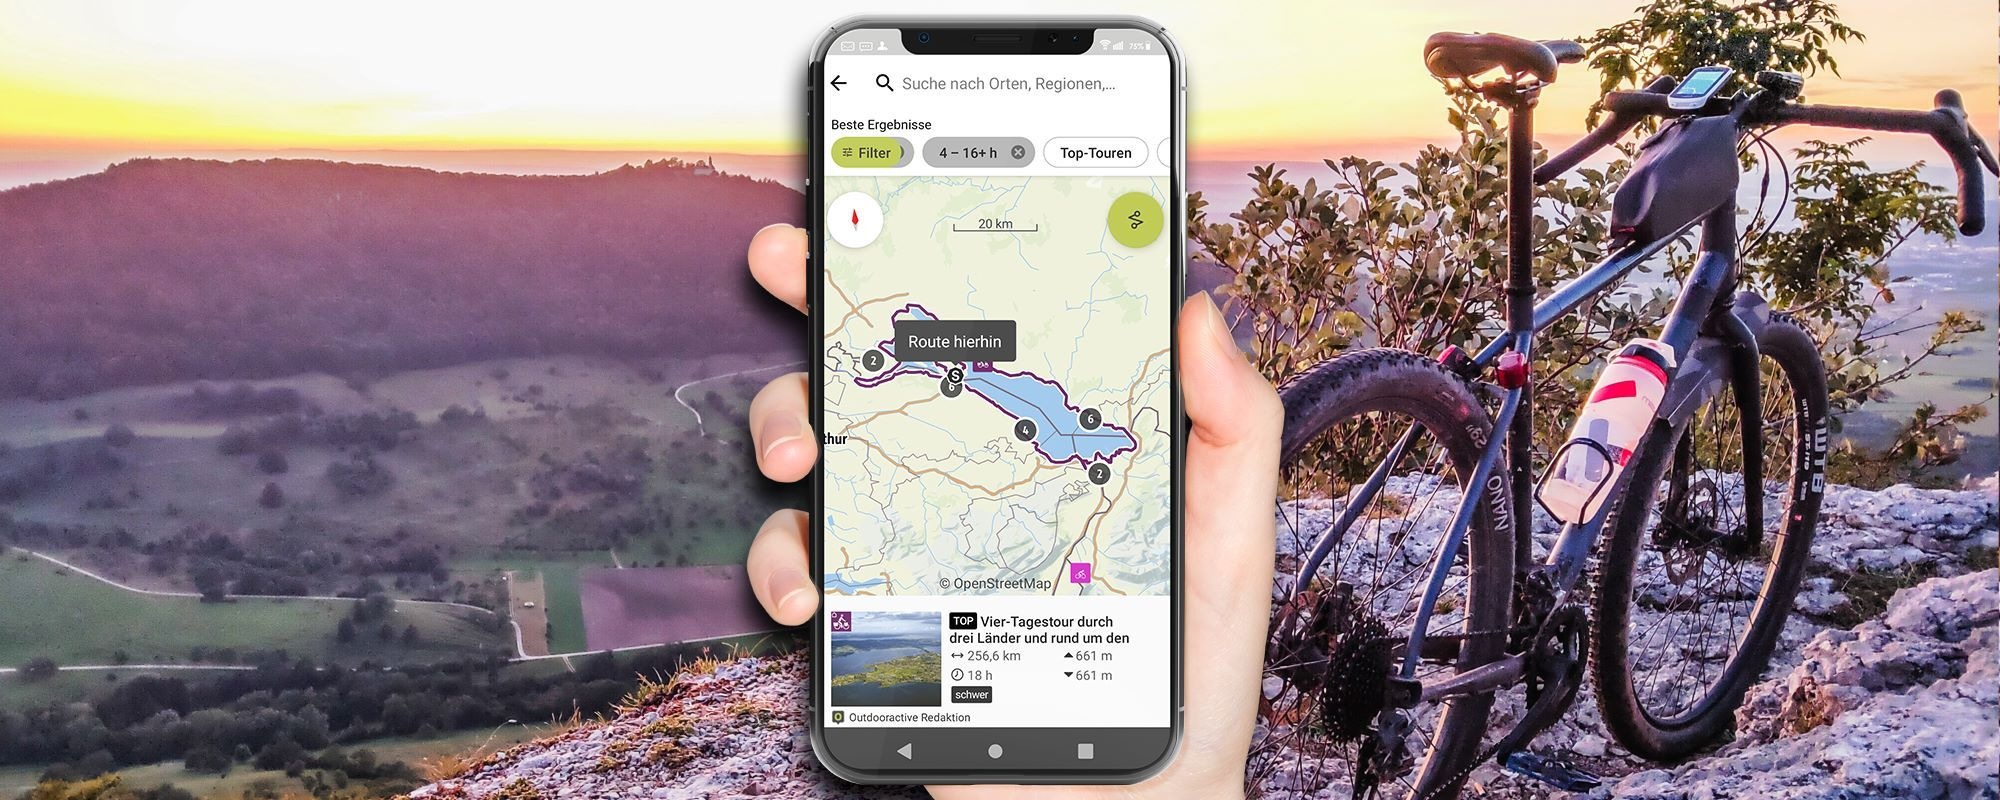 Outdooractive app review - App and tour planner portal tested